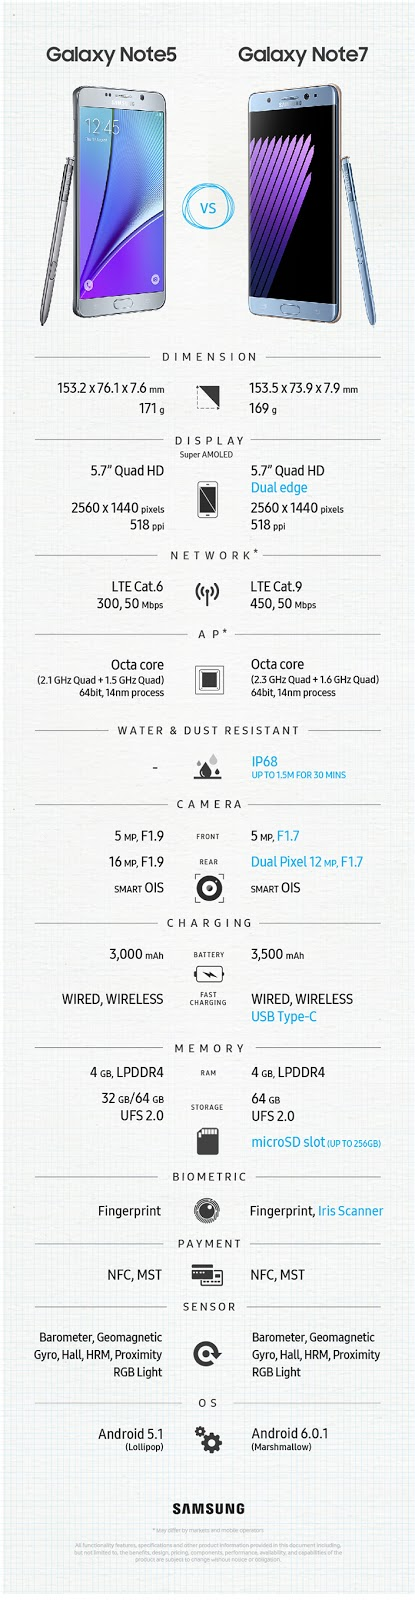 Galaxy Note 5 vs. Note 7 specs